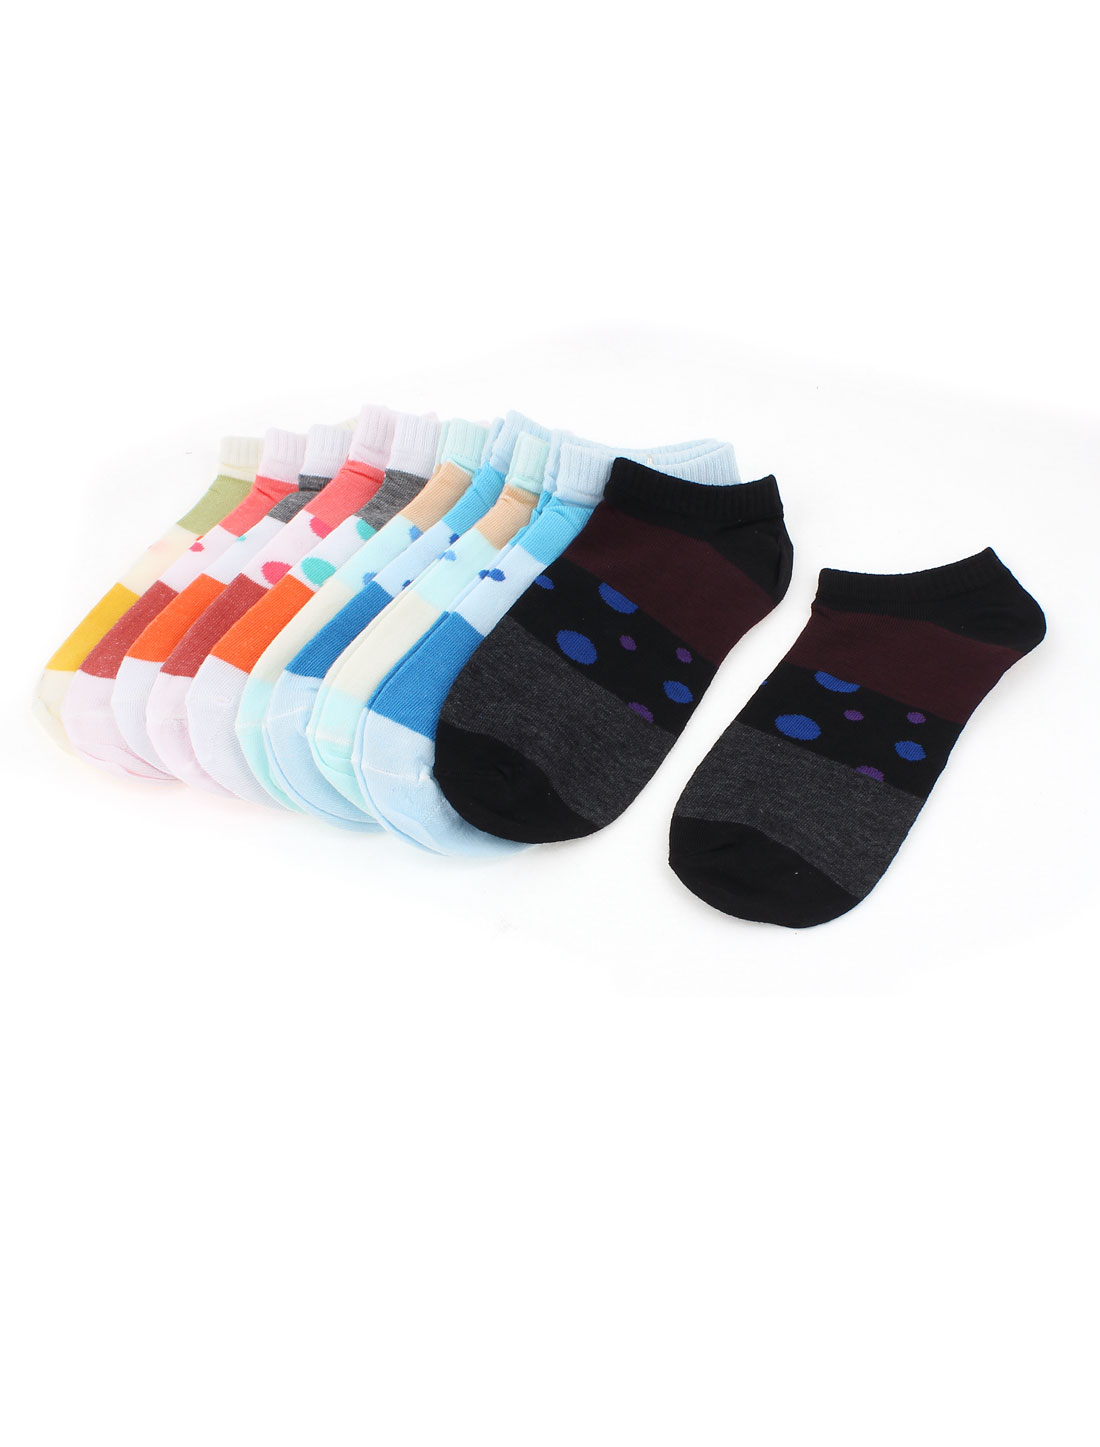 Elastic Cotton Blends Dots Printed Ankle Socks for Lady 10 Pairs Assorted Color